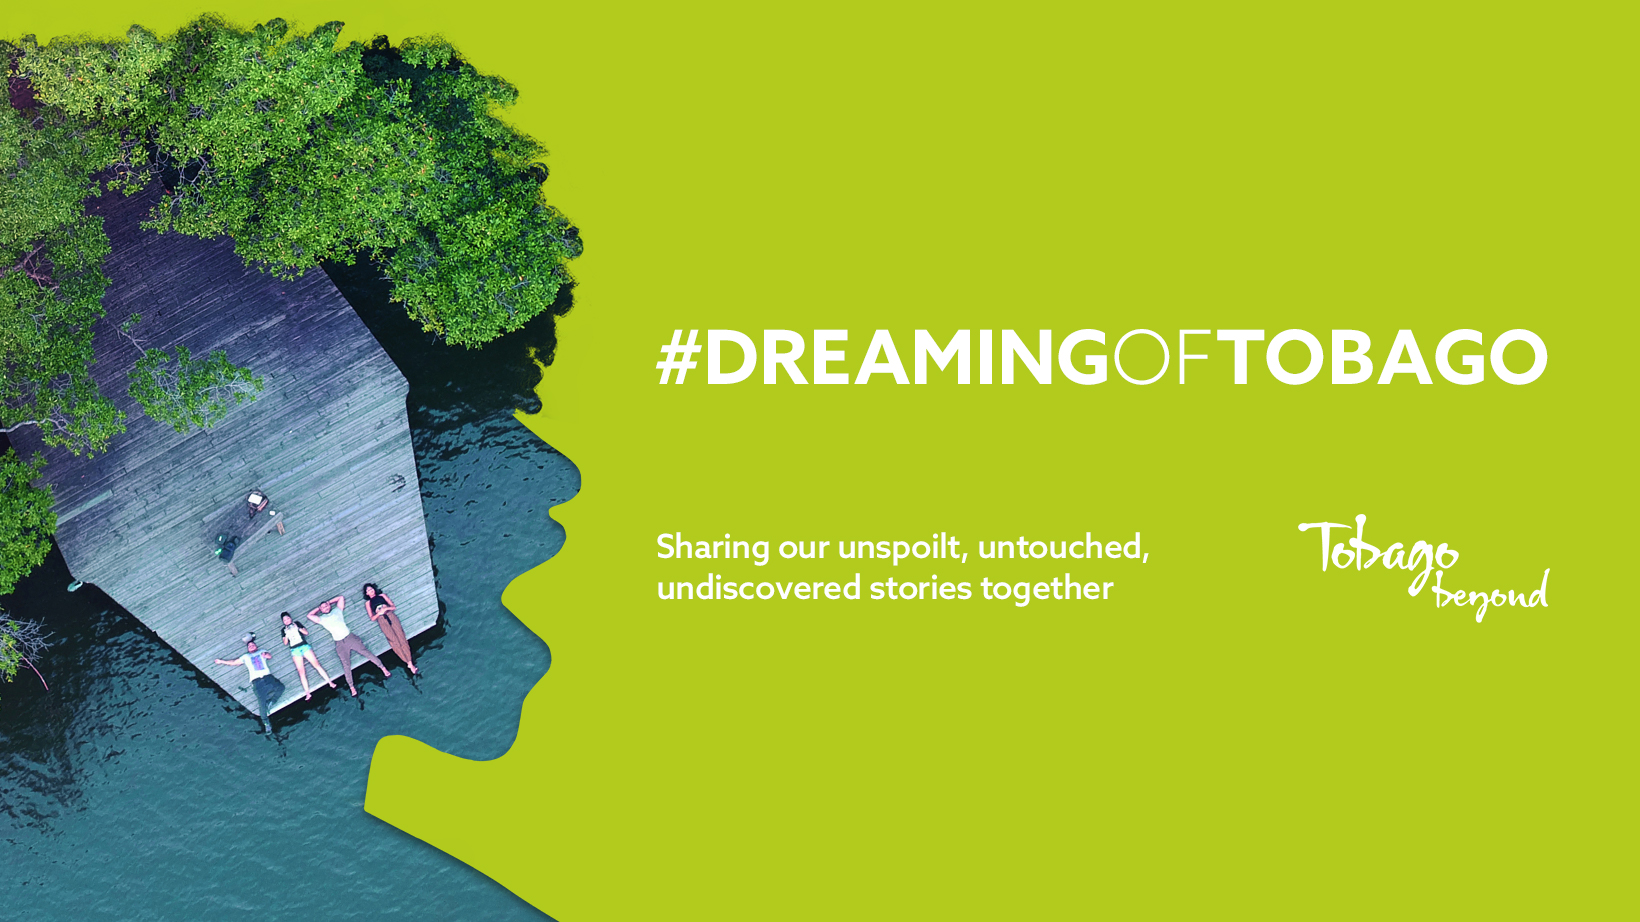 Official #DreamingofTobago campaign artwork featured on Tobago's social media pages